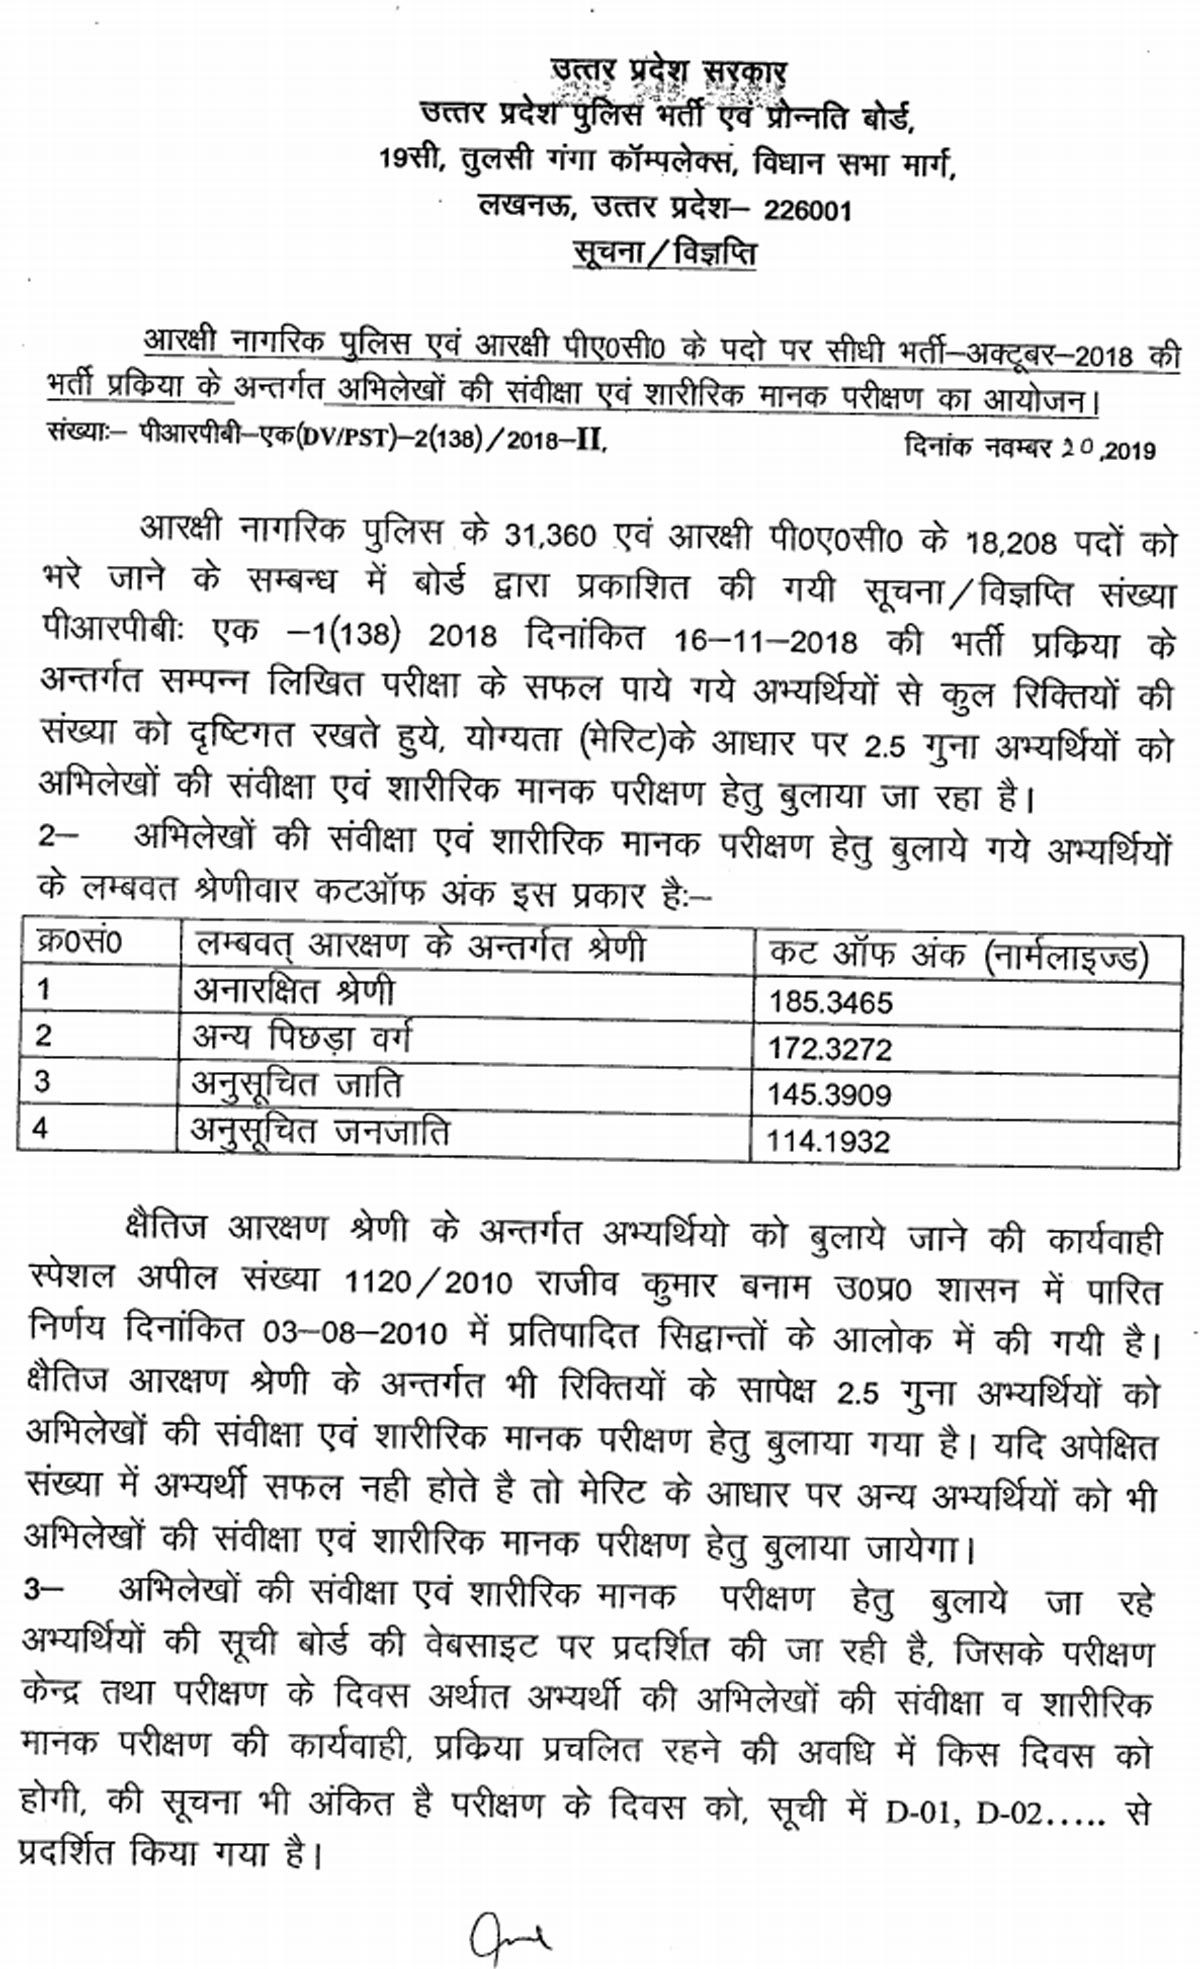 UP Police Constable Cut-off and result 2019 for DVPST